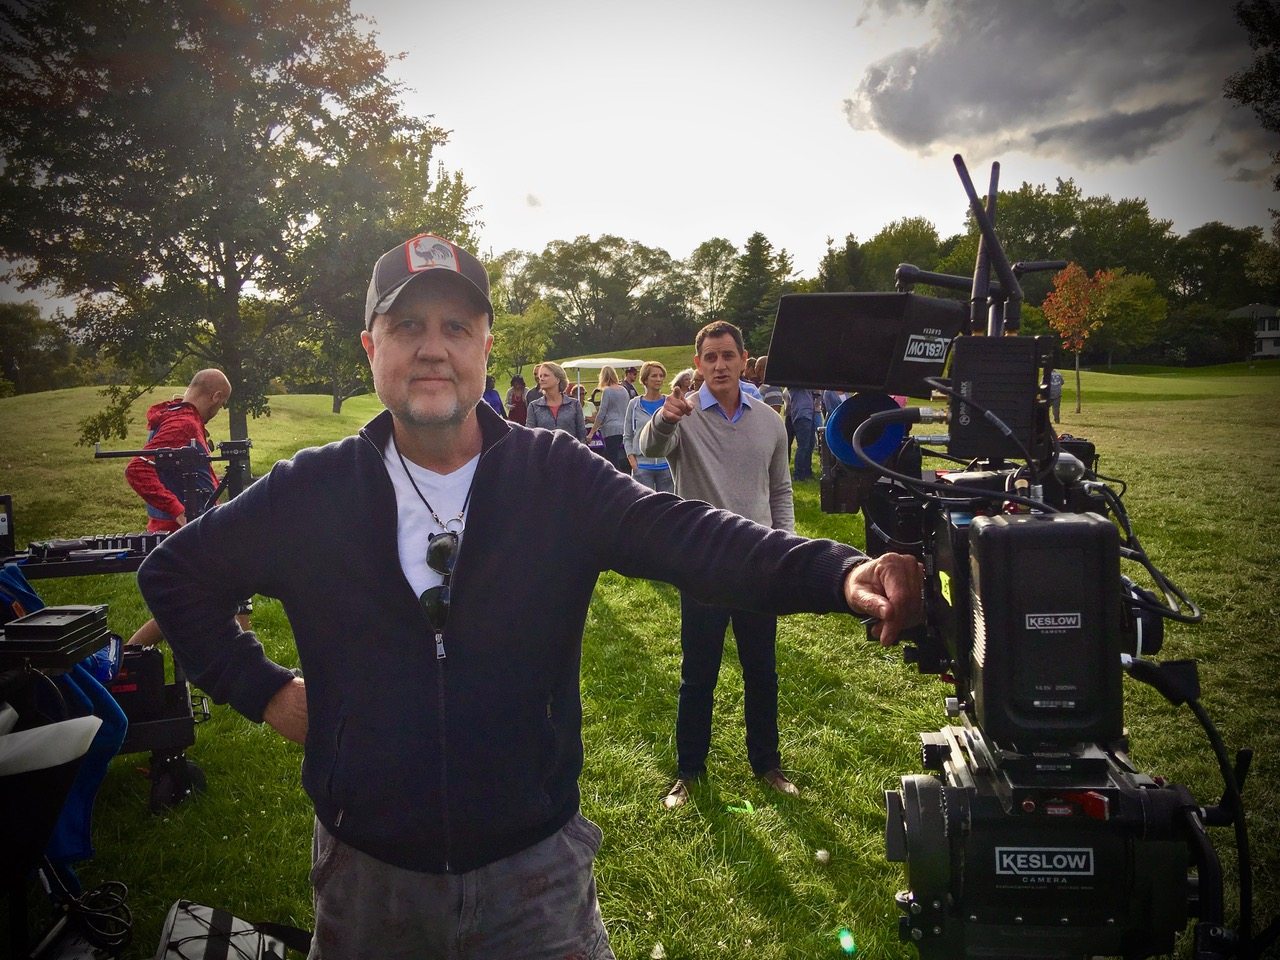 Sparks Signs Director and Cameraman Blair Hayes